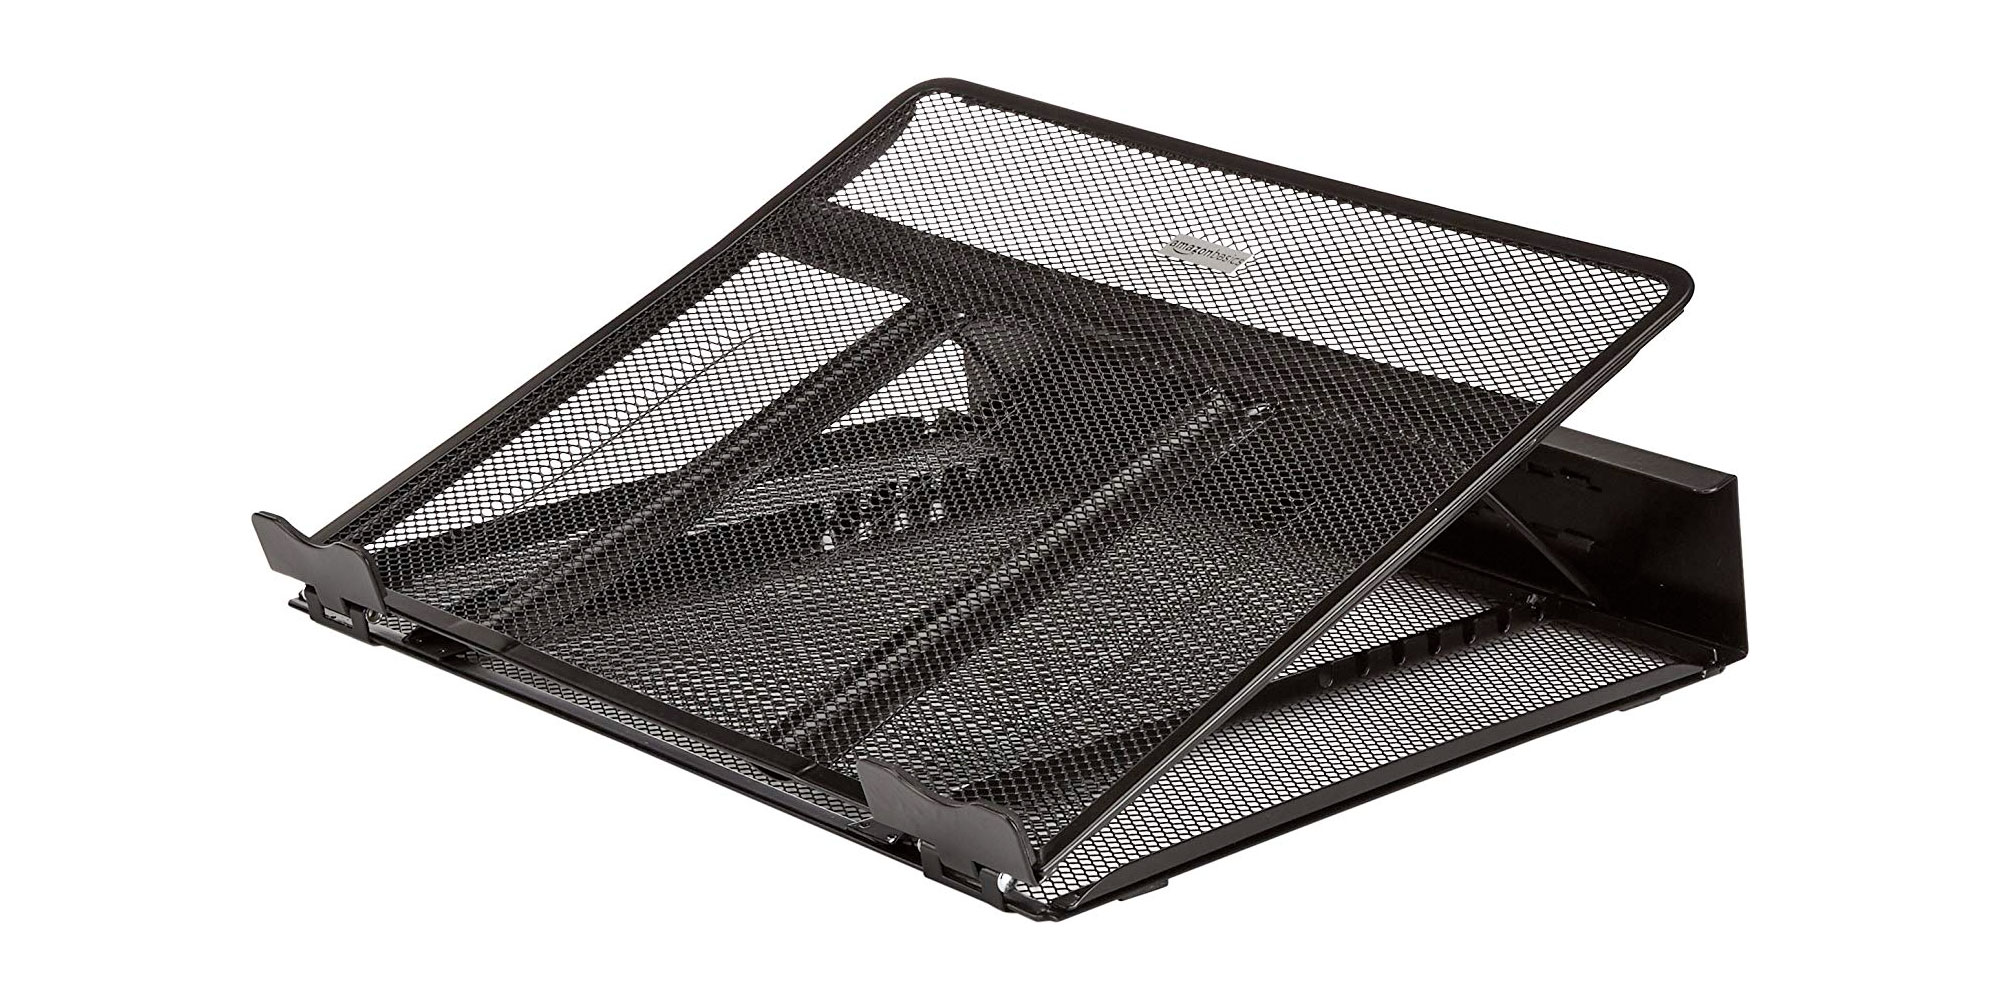 Keep Your Macbook Cool Amp Off The Desk W This Ventilated